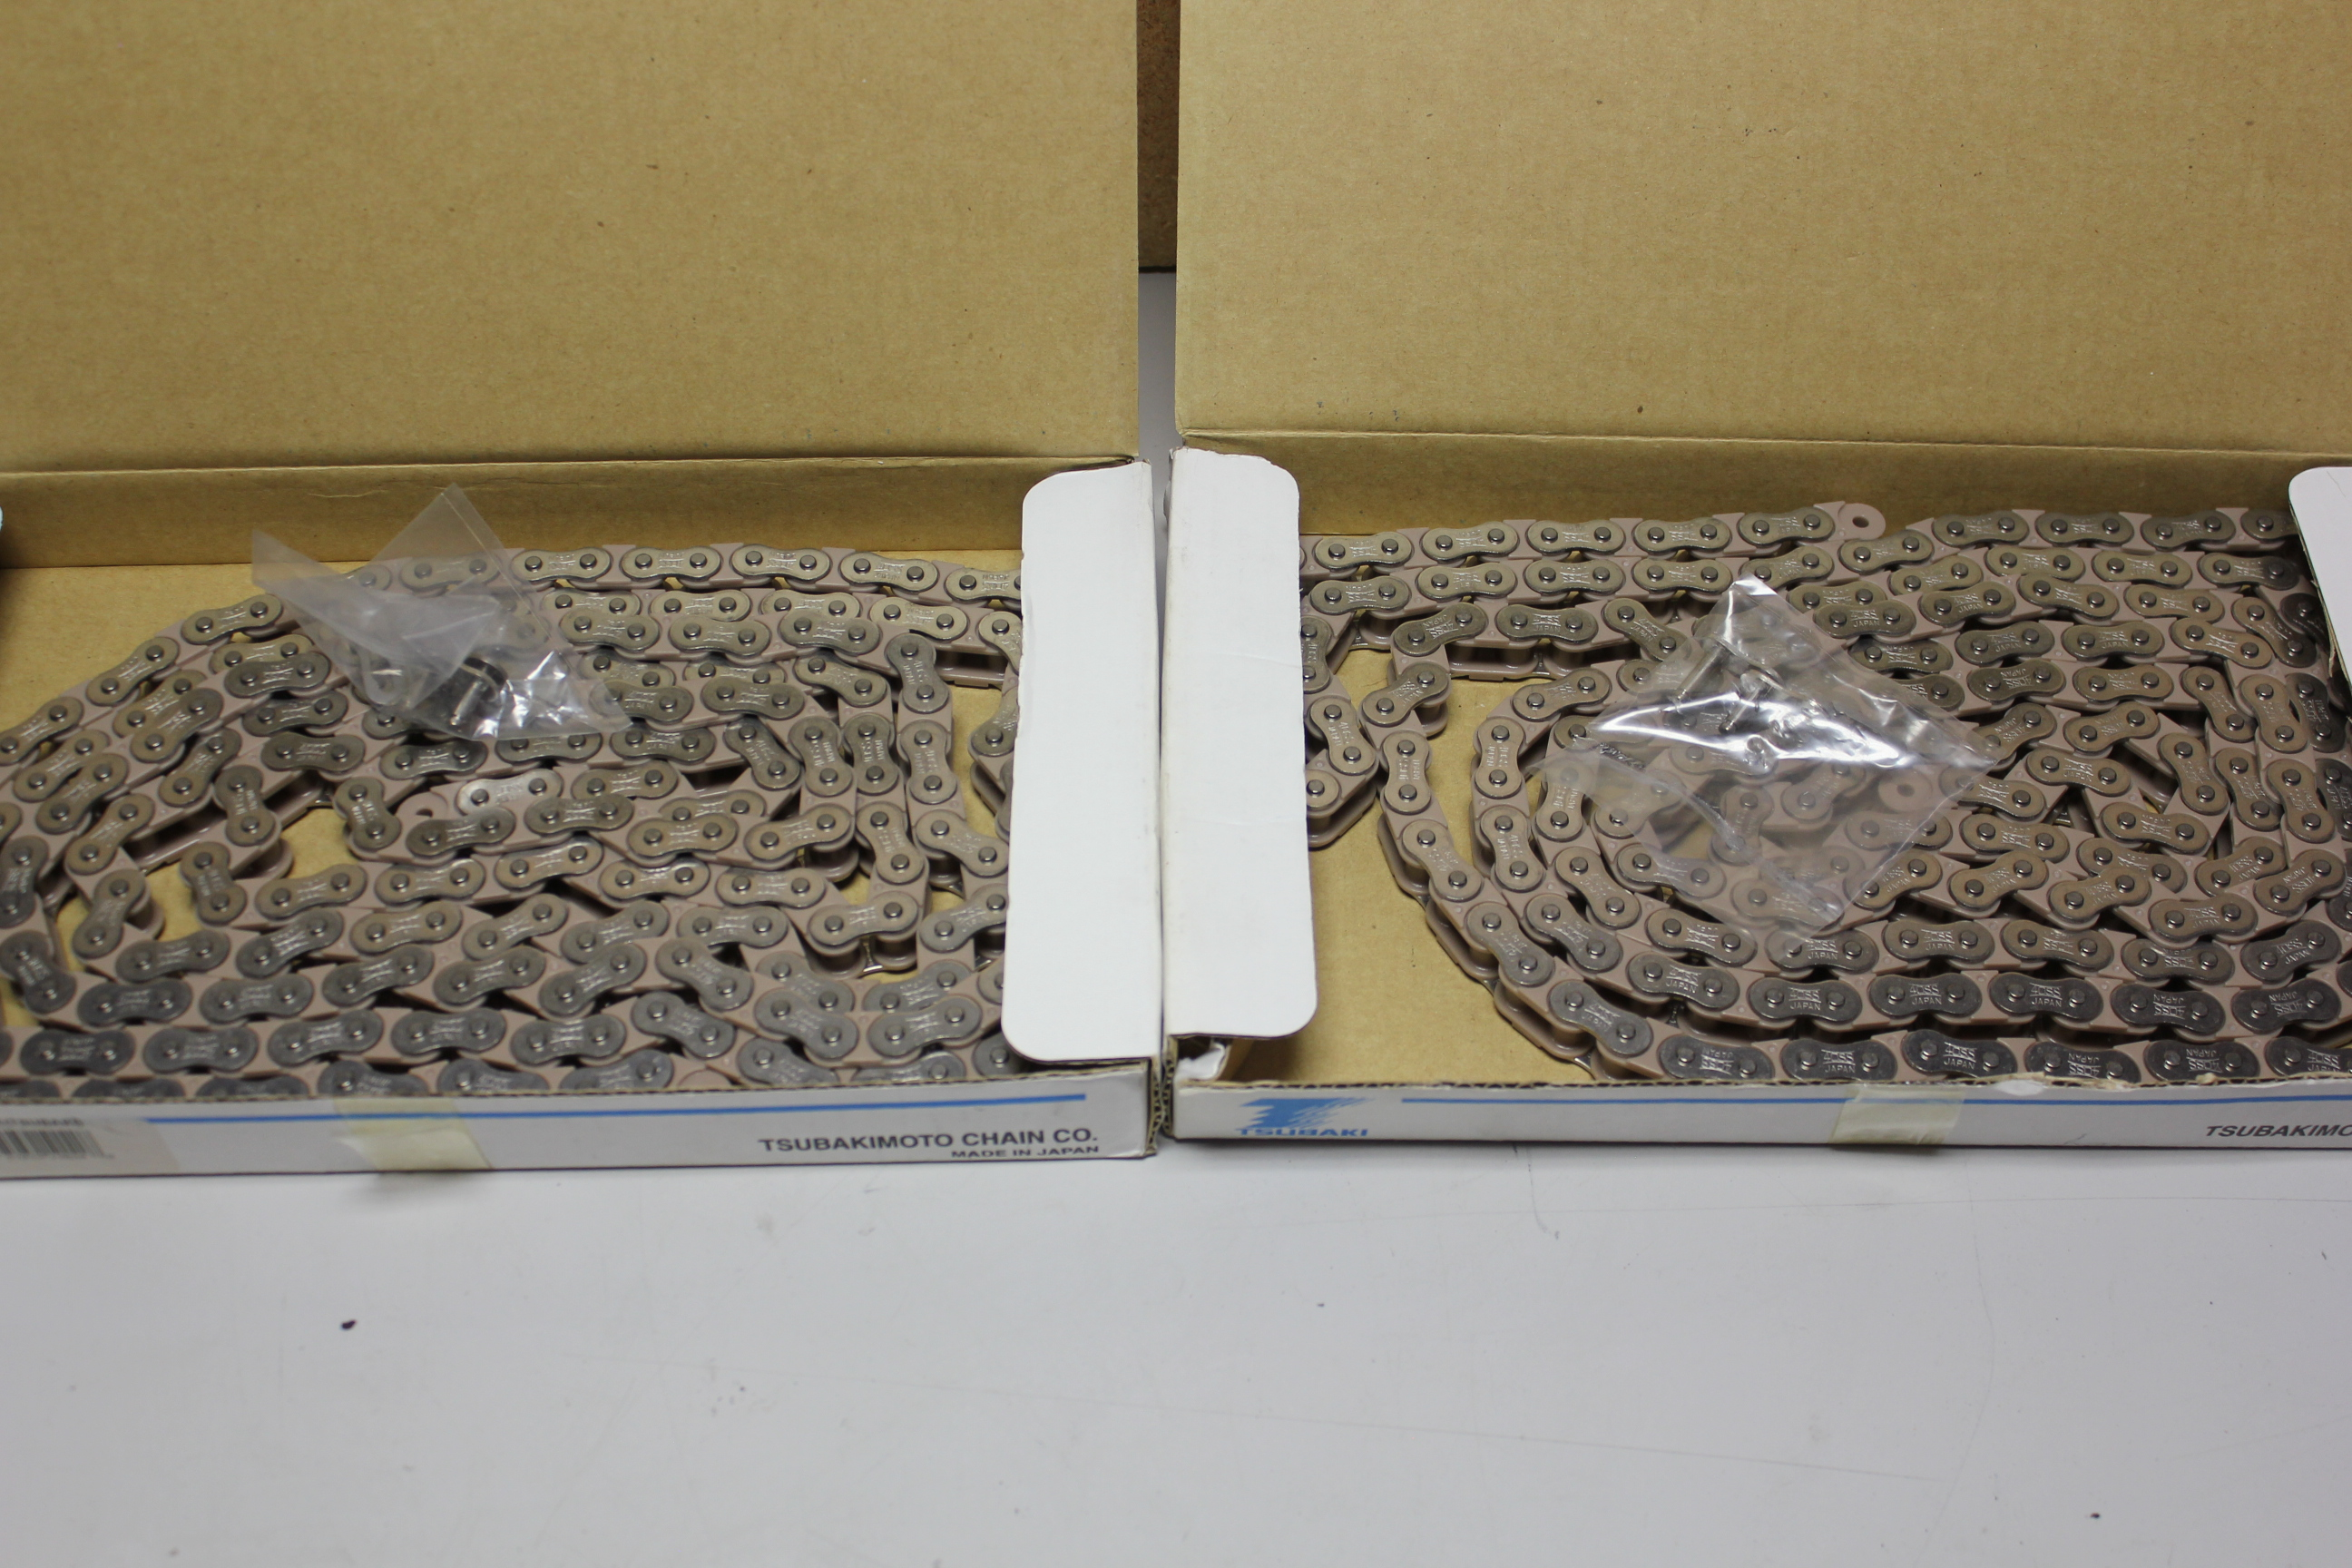 2 NEW BOXES OF TSUBAKI ROLLER CHAIN - Image 3 of 3